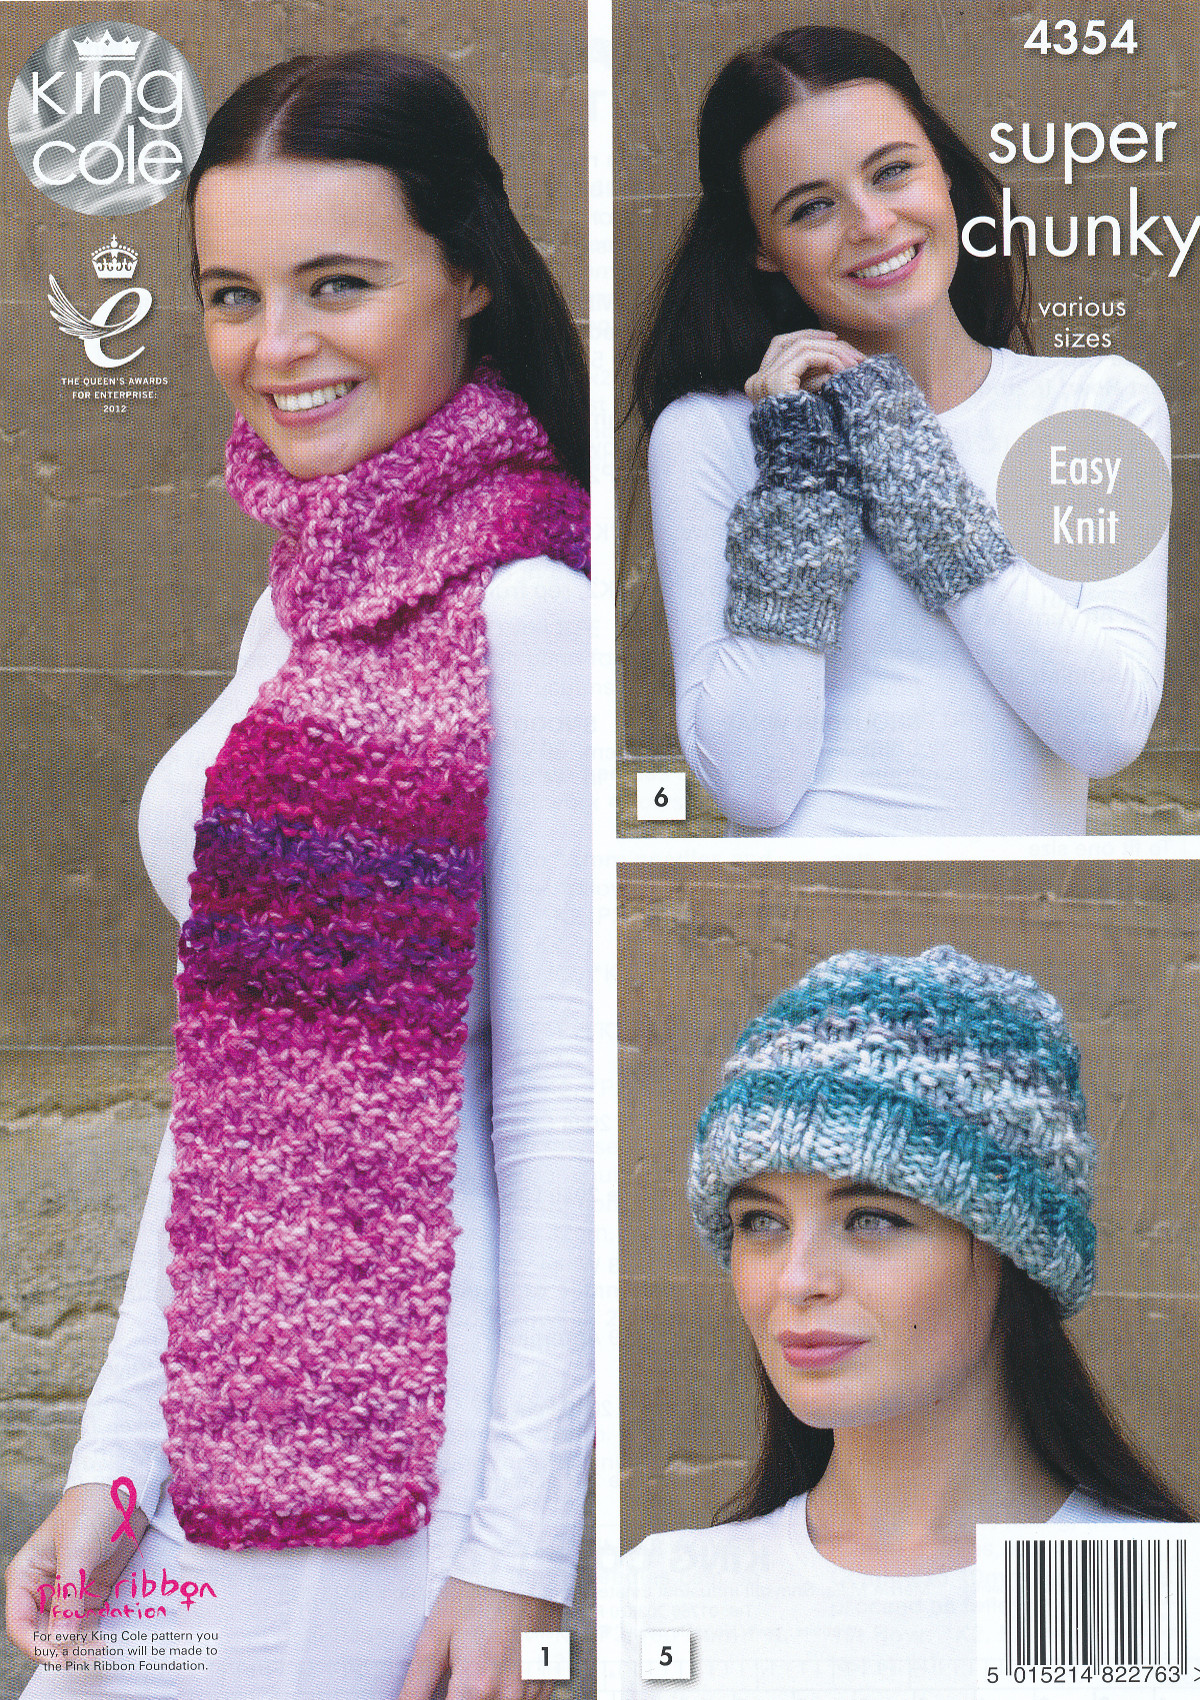 King cole ladies knitting pattern scarf wrap snood hat wrist the wool illustrated is king cole big value super chunky super chunky tints please see our other listings for our range of yarns bankloansurffo Images